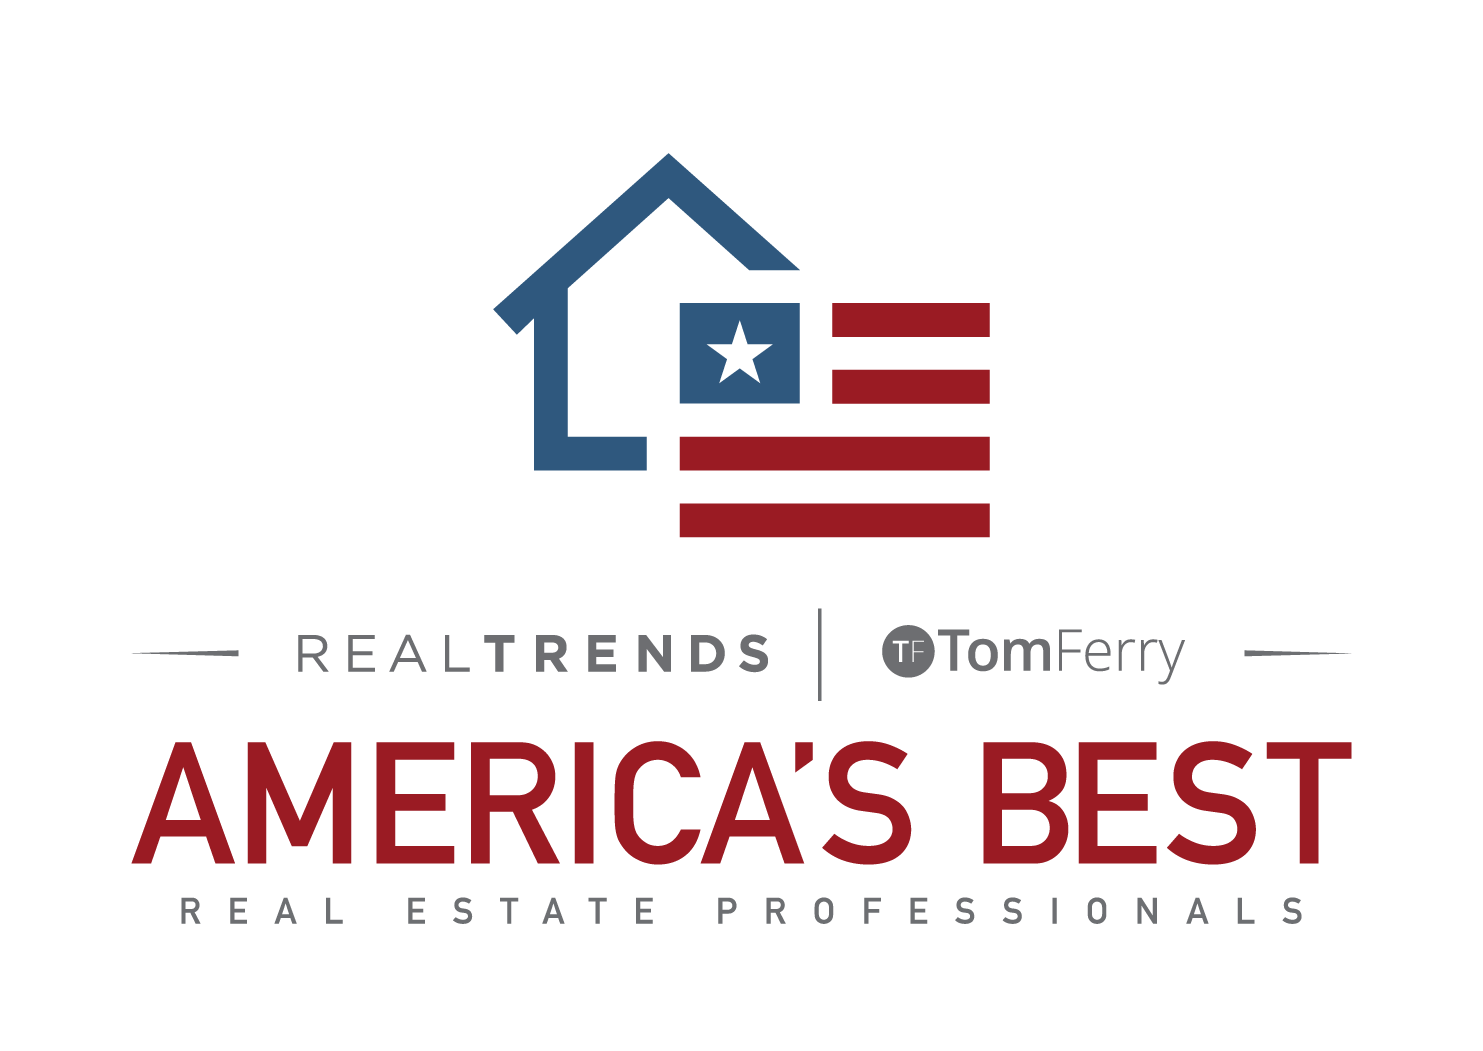 PUBLISHED IN REALTRENDS JULY 2015, 2016, 2017, 2018, 2019: BEST REAL ESTATE AGENTS IN AMERICA